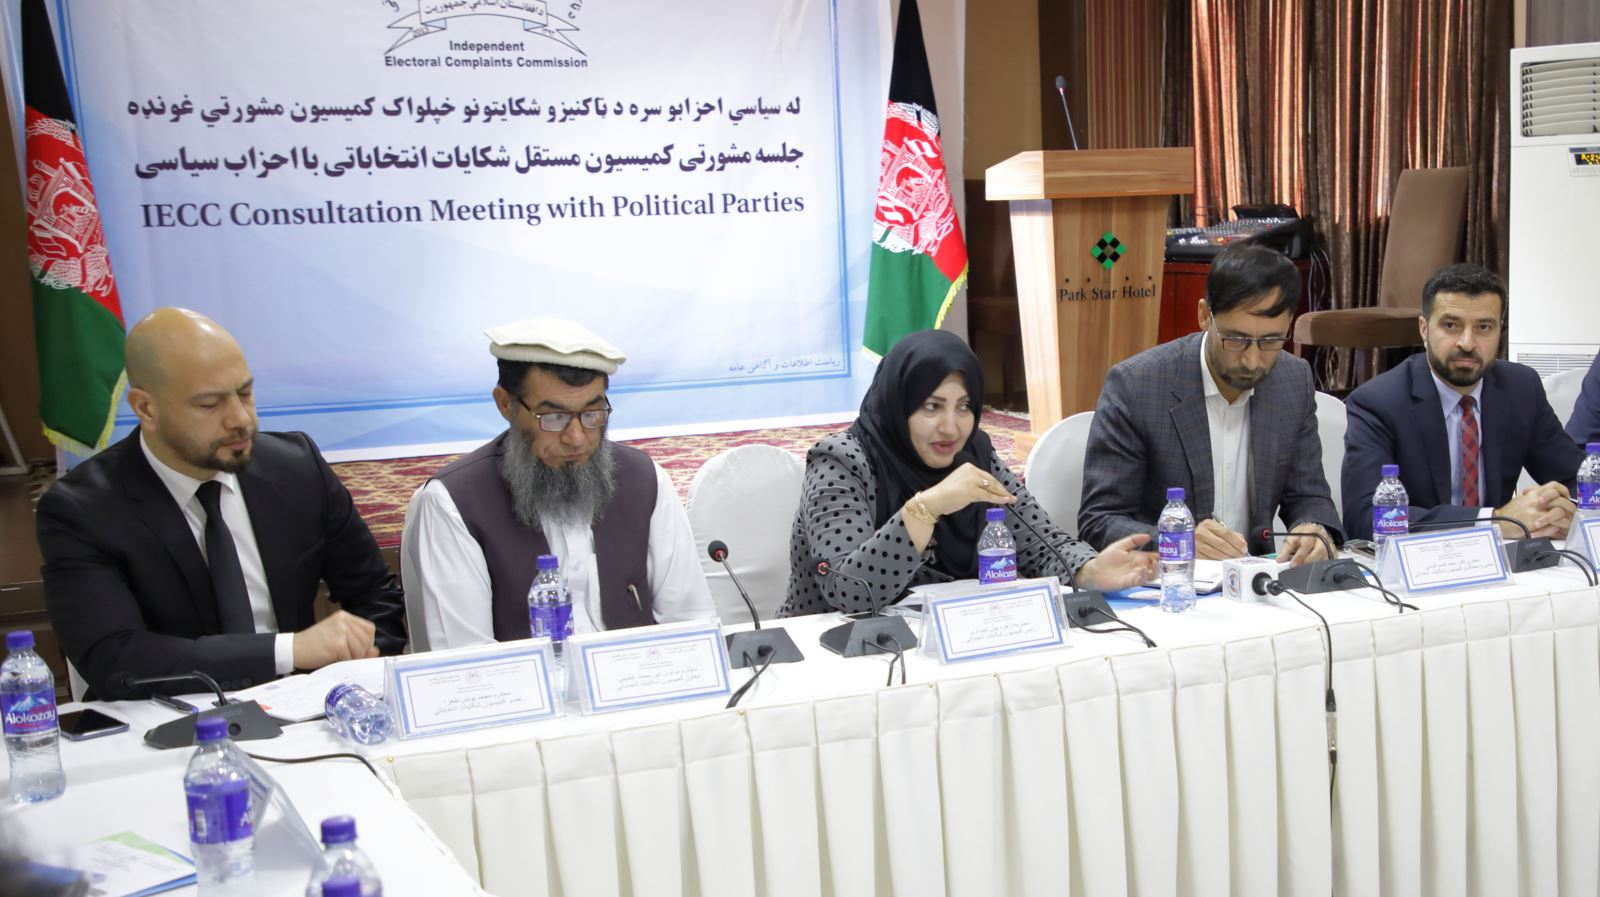 ECC consultation meeting with political parties